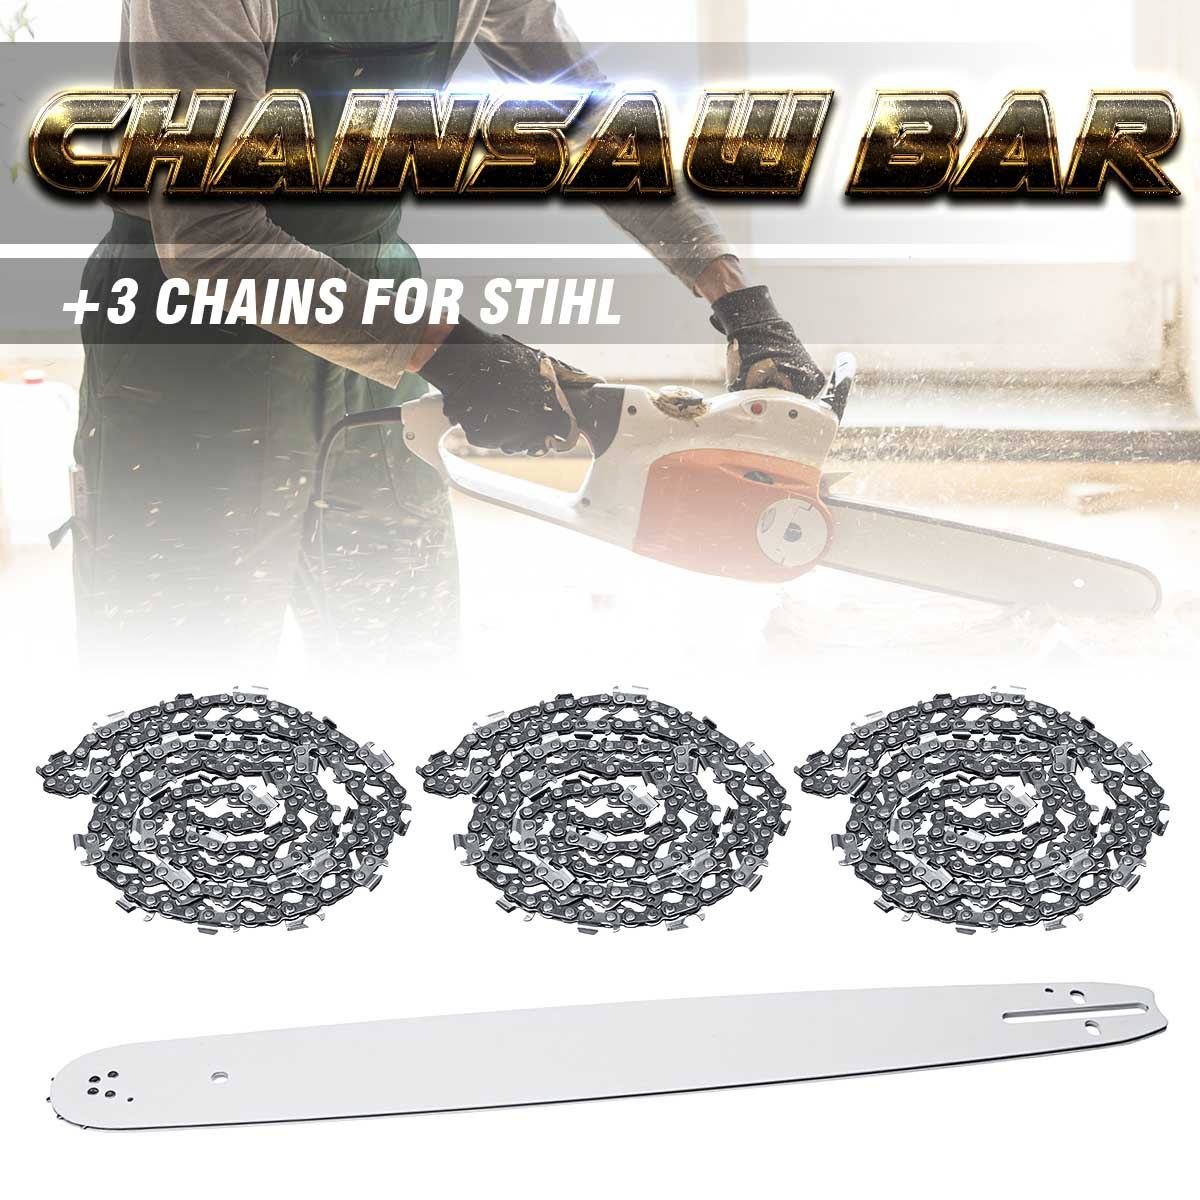 цена на 4Pcs 20 Chainsaw Guide Bar with Saw Chain 3/8 72DL .63 For STIHL MS290 MS291-310-340-360-361-361C Power Tools Accessories